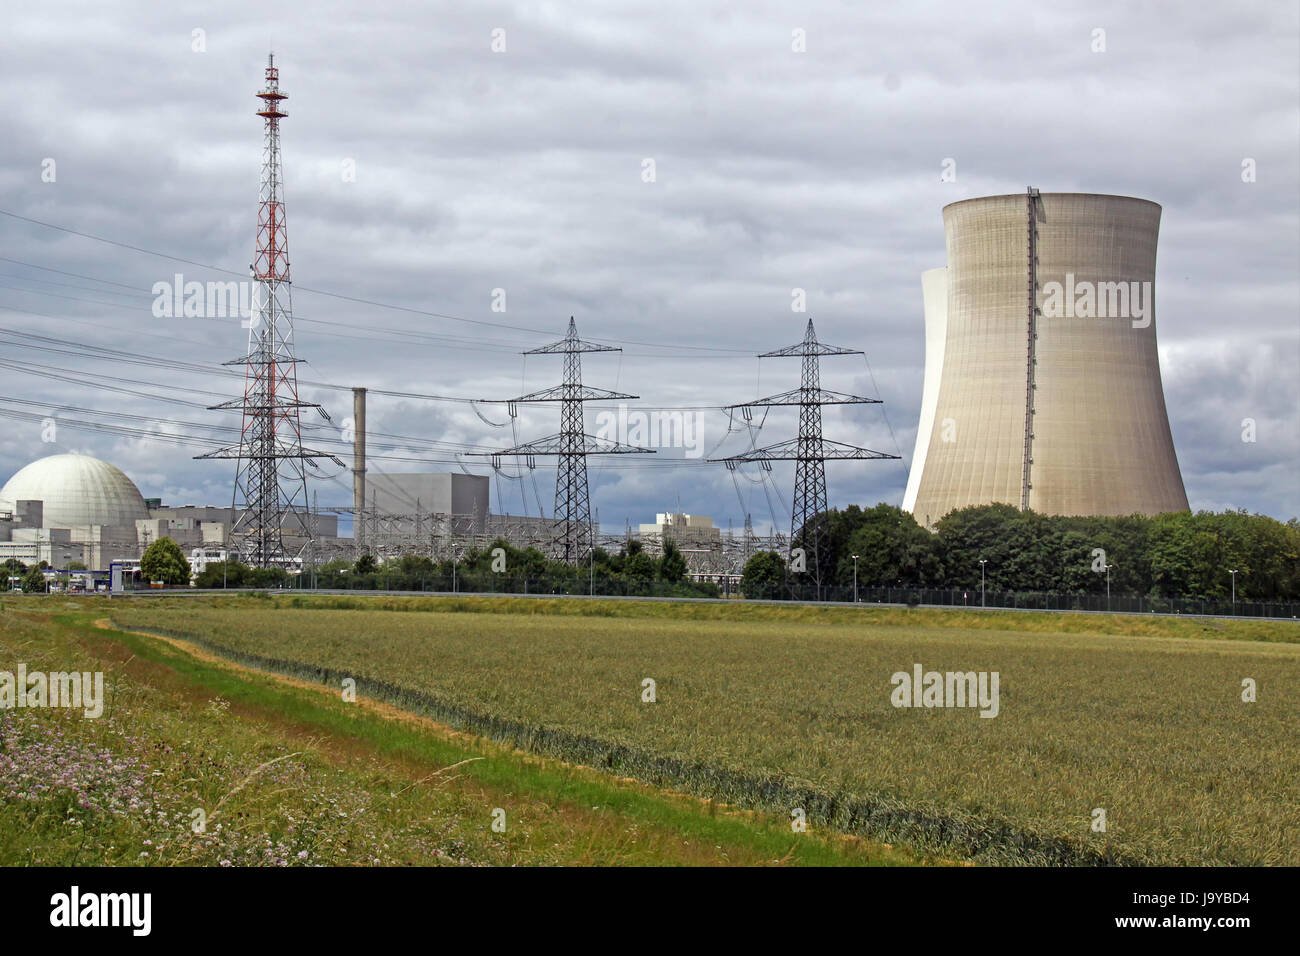 nuclear power plant in philippsburg - Stock Image